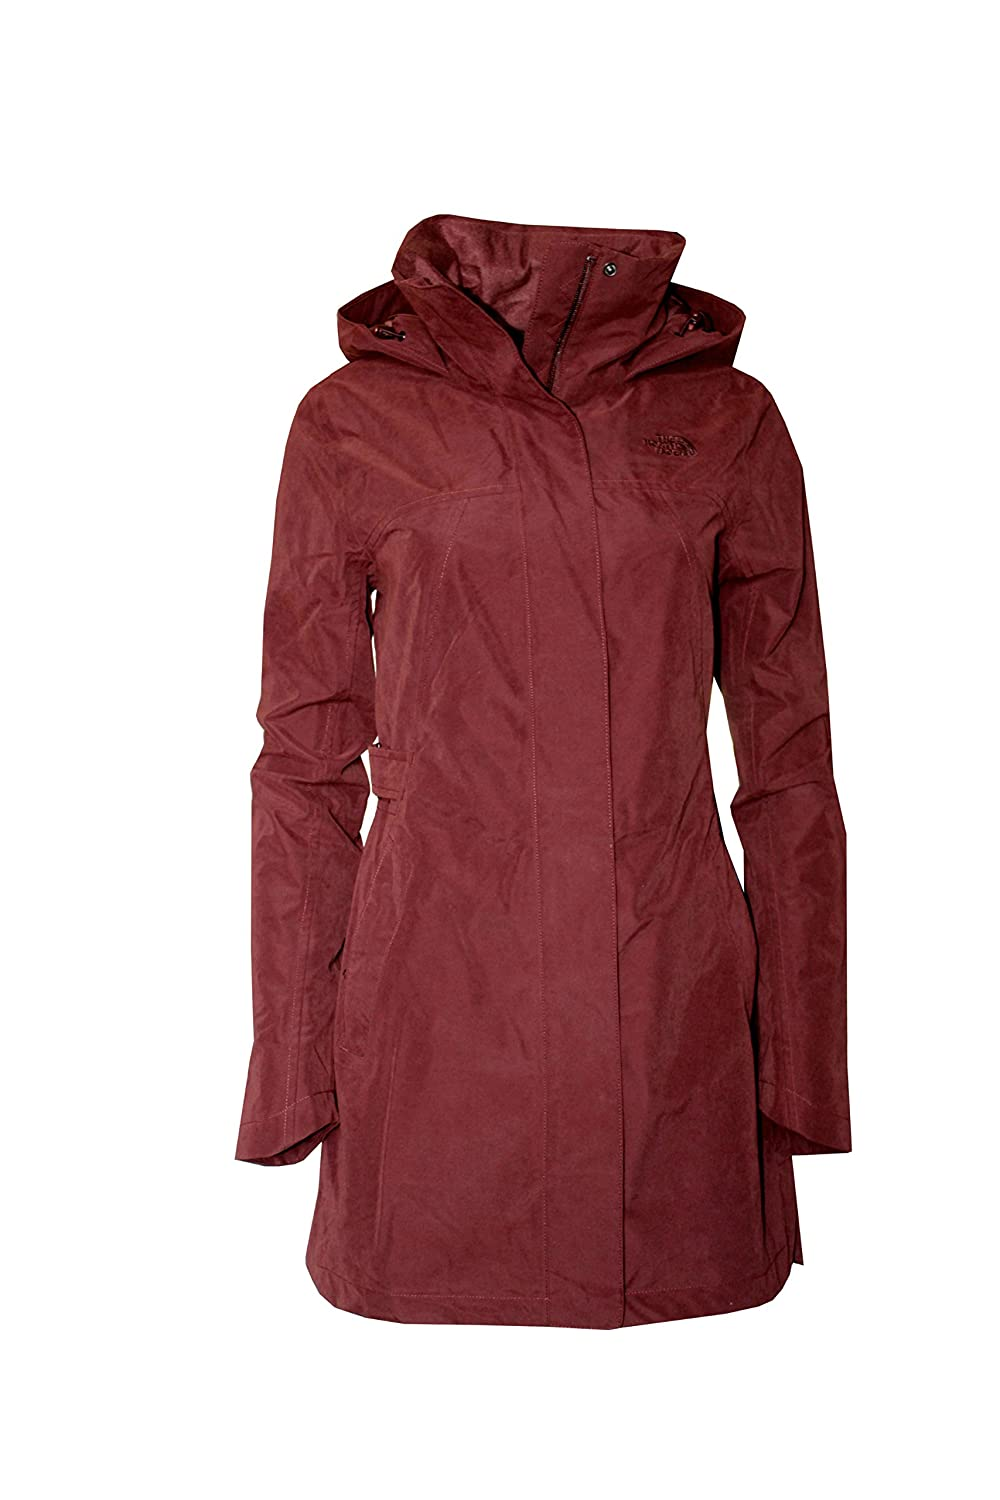 81b70de1a Amazon.com: The North Face Women's Laney Trench II Jacket Sequoia ...